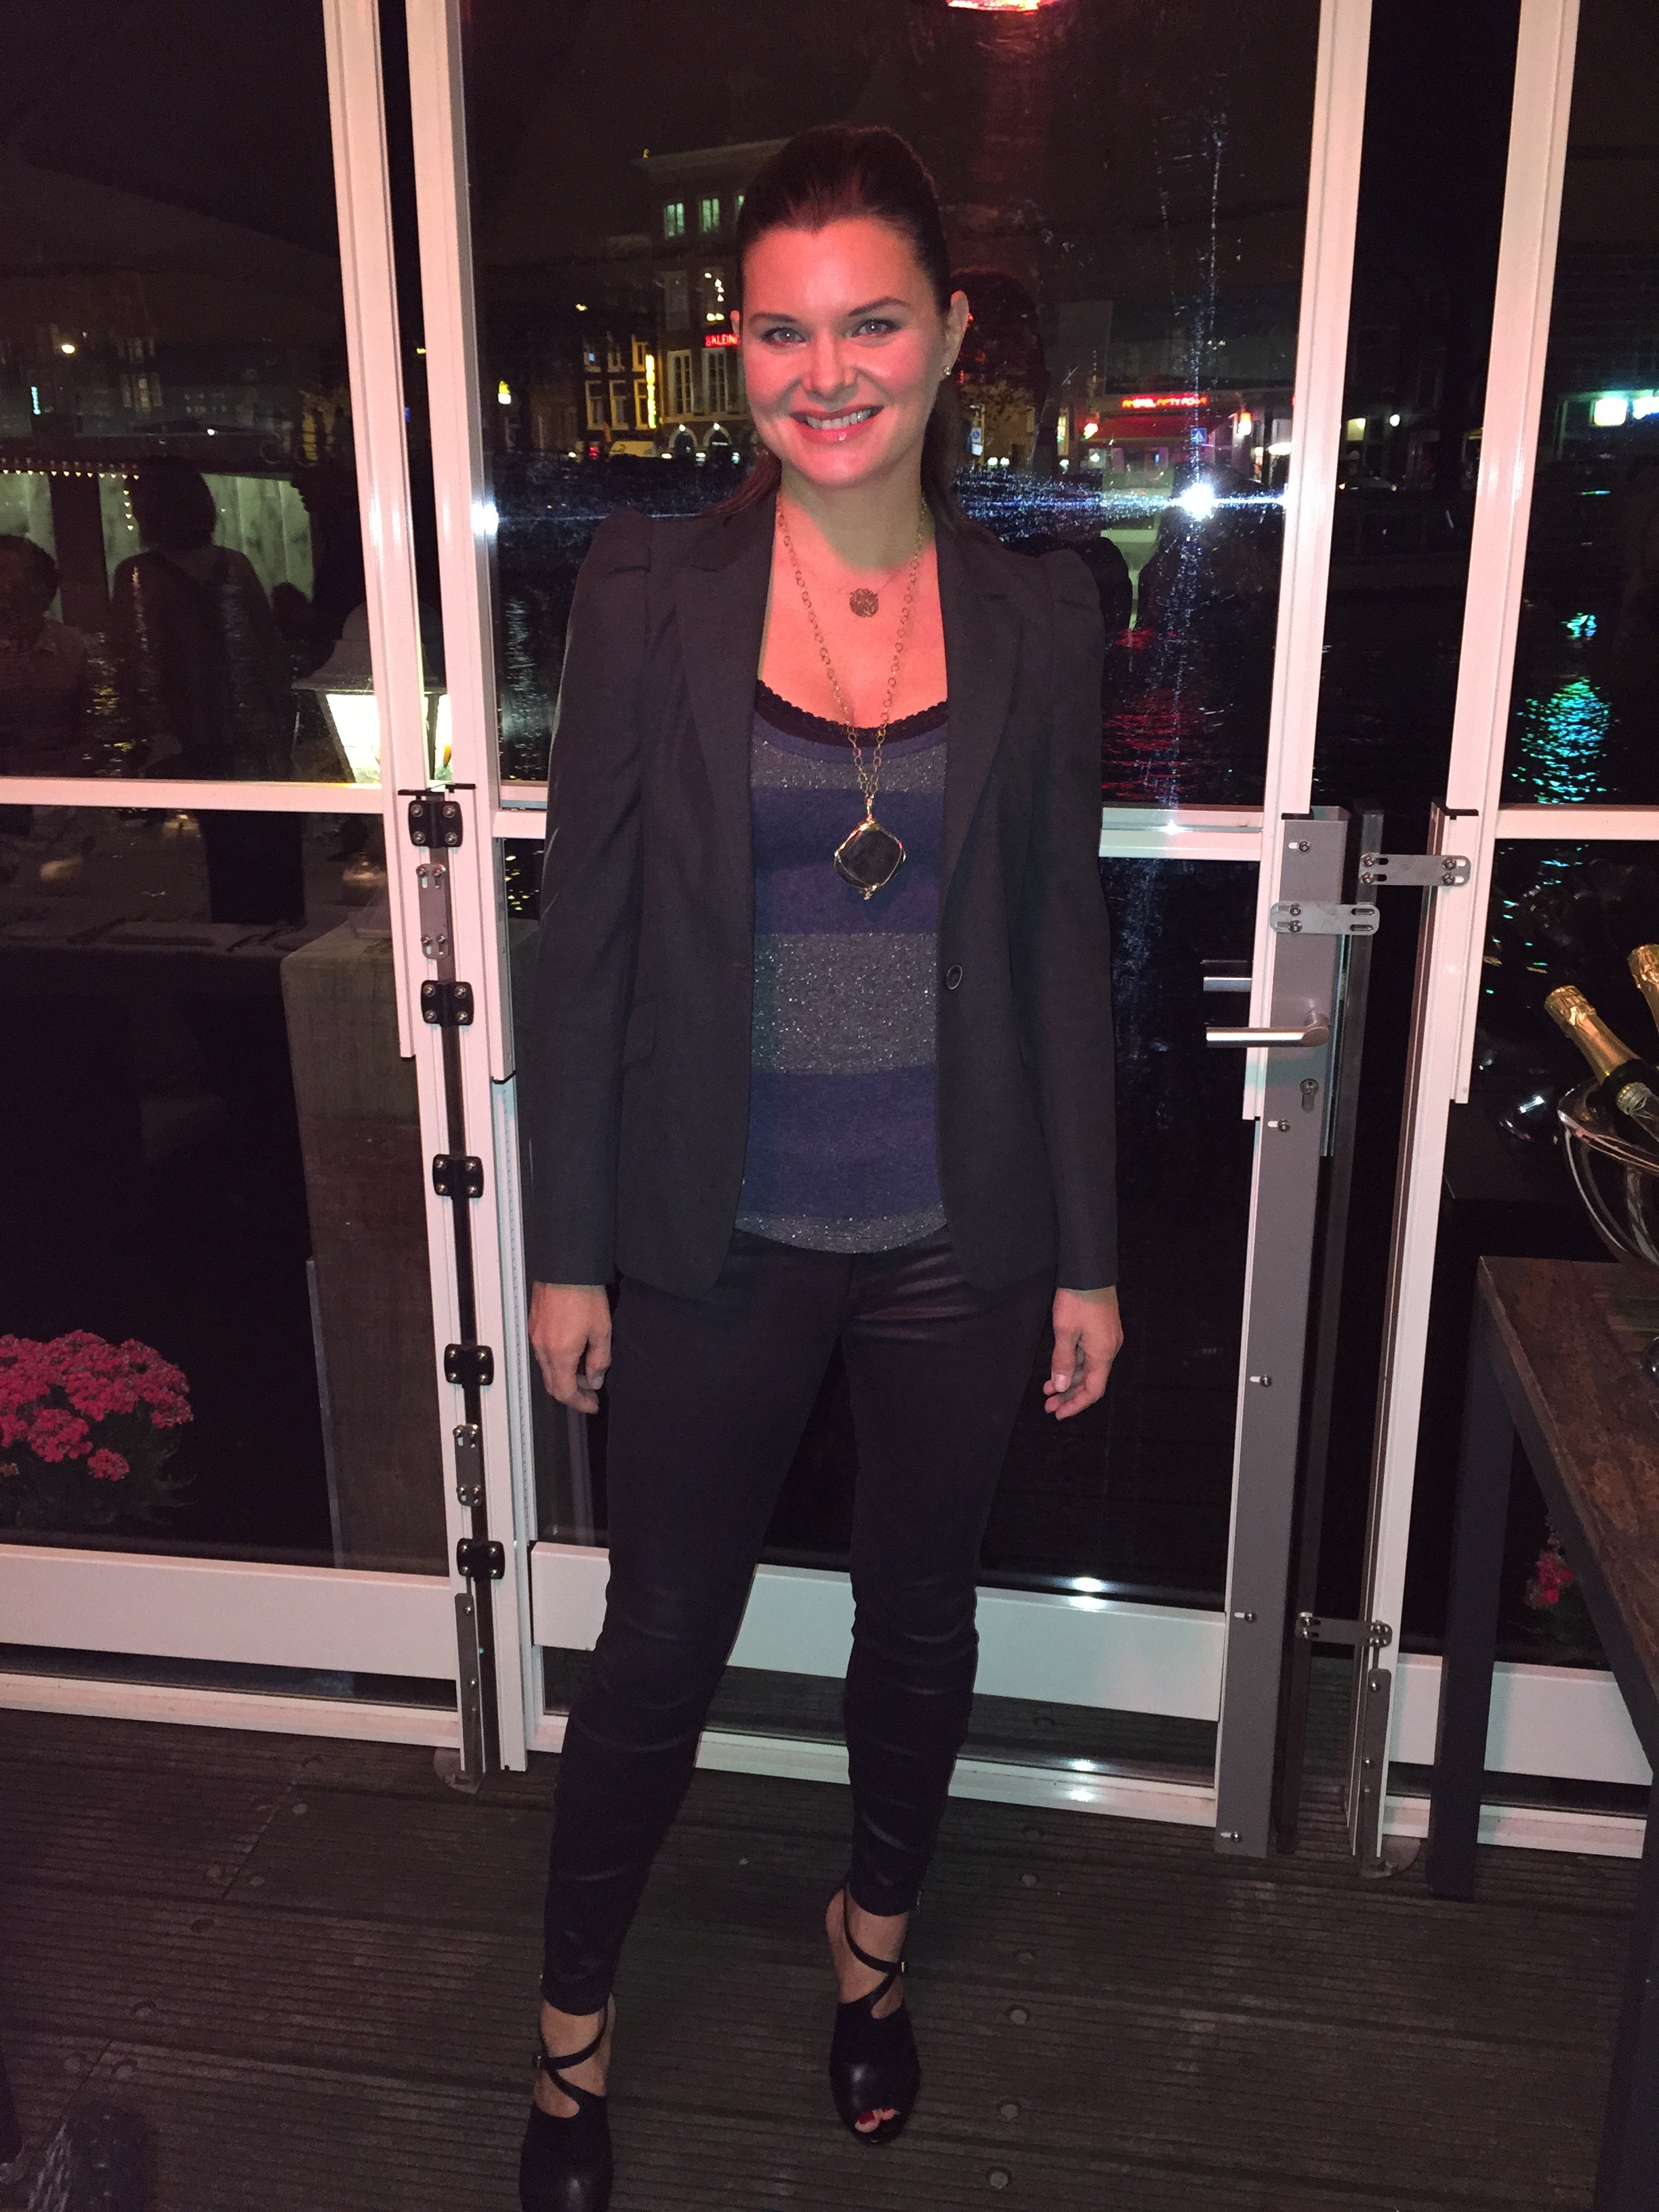 The beautiful Heather Tom at the hotel restaurant overlooking the canals